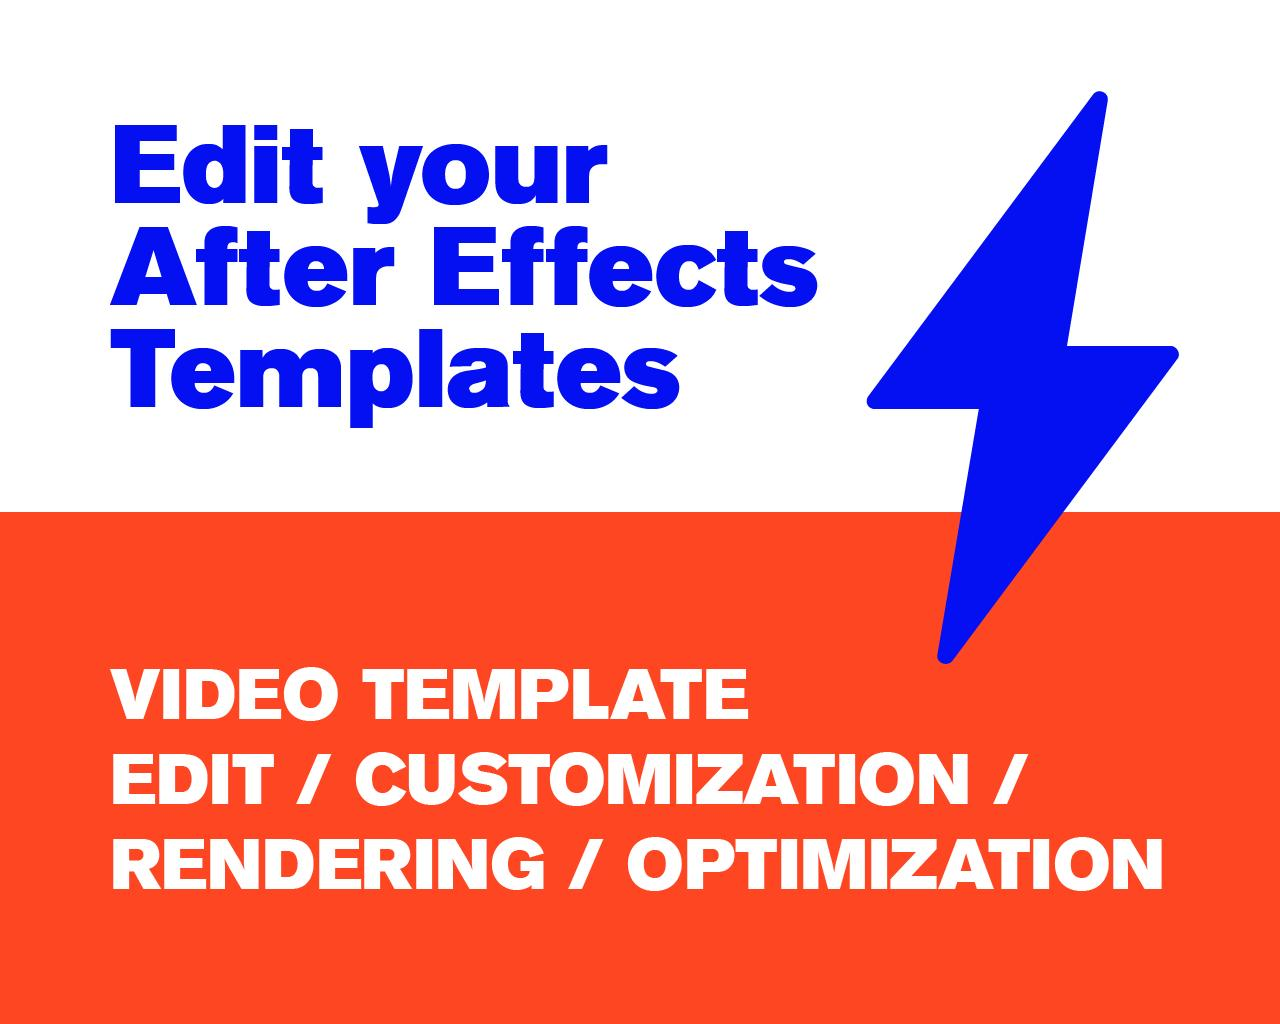 After Effects Video Template Edit / Customization / Rendering / Optimization by goografx - 109745